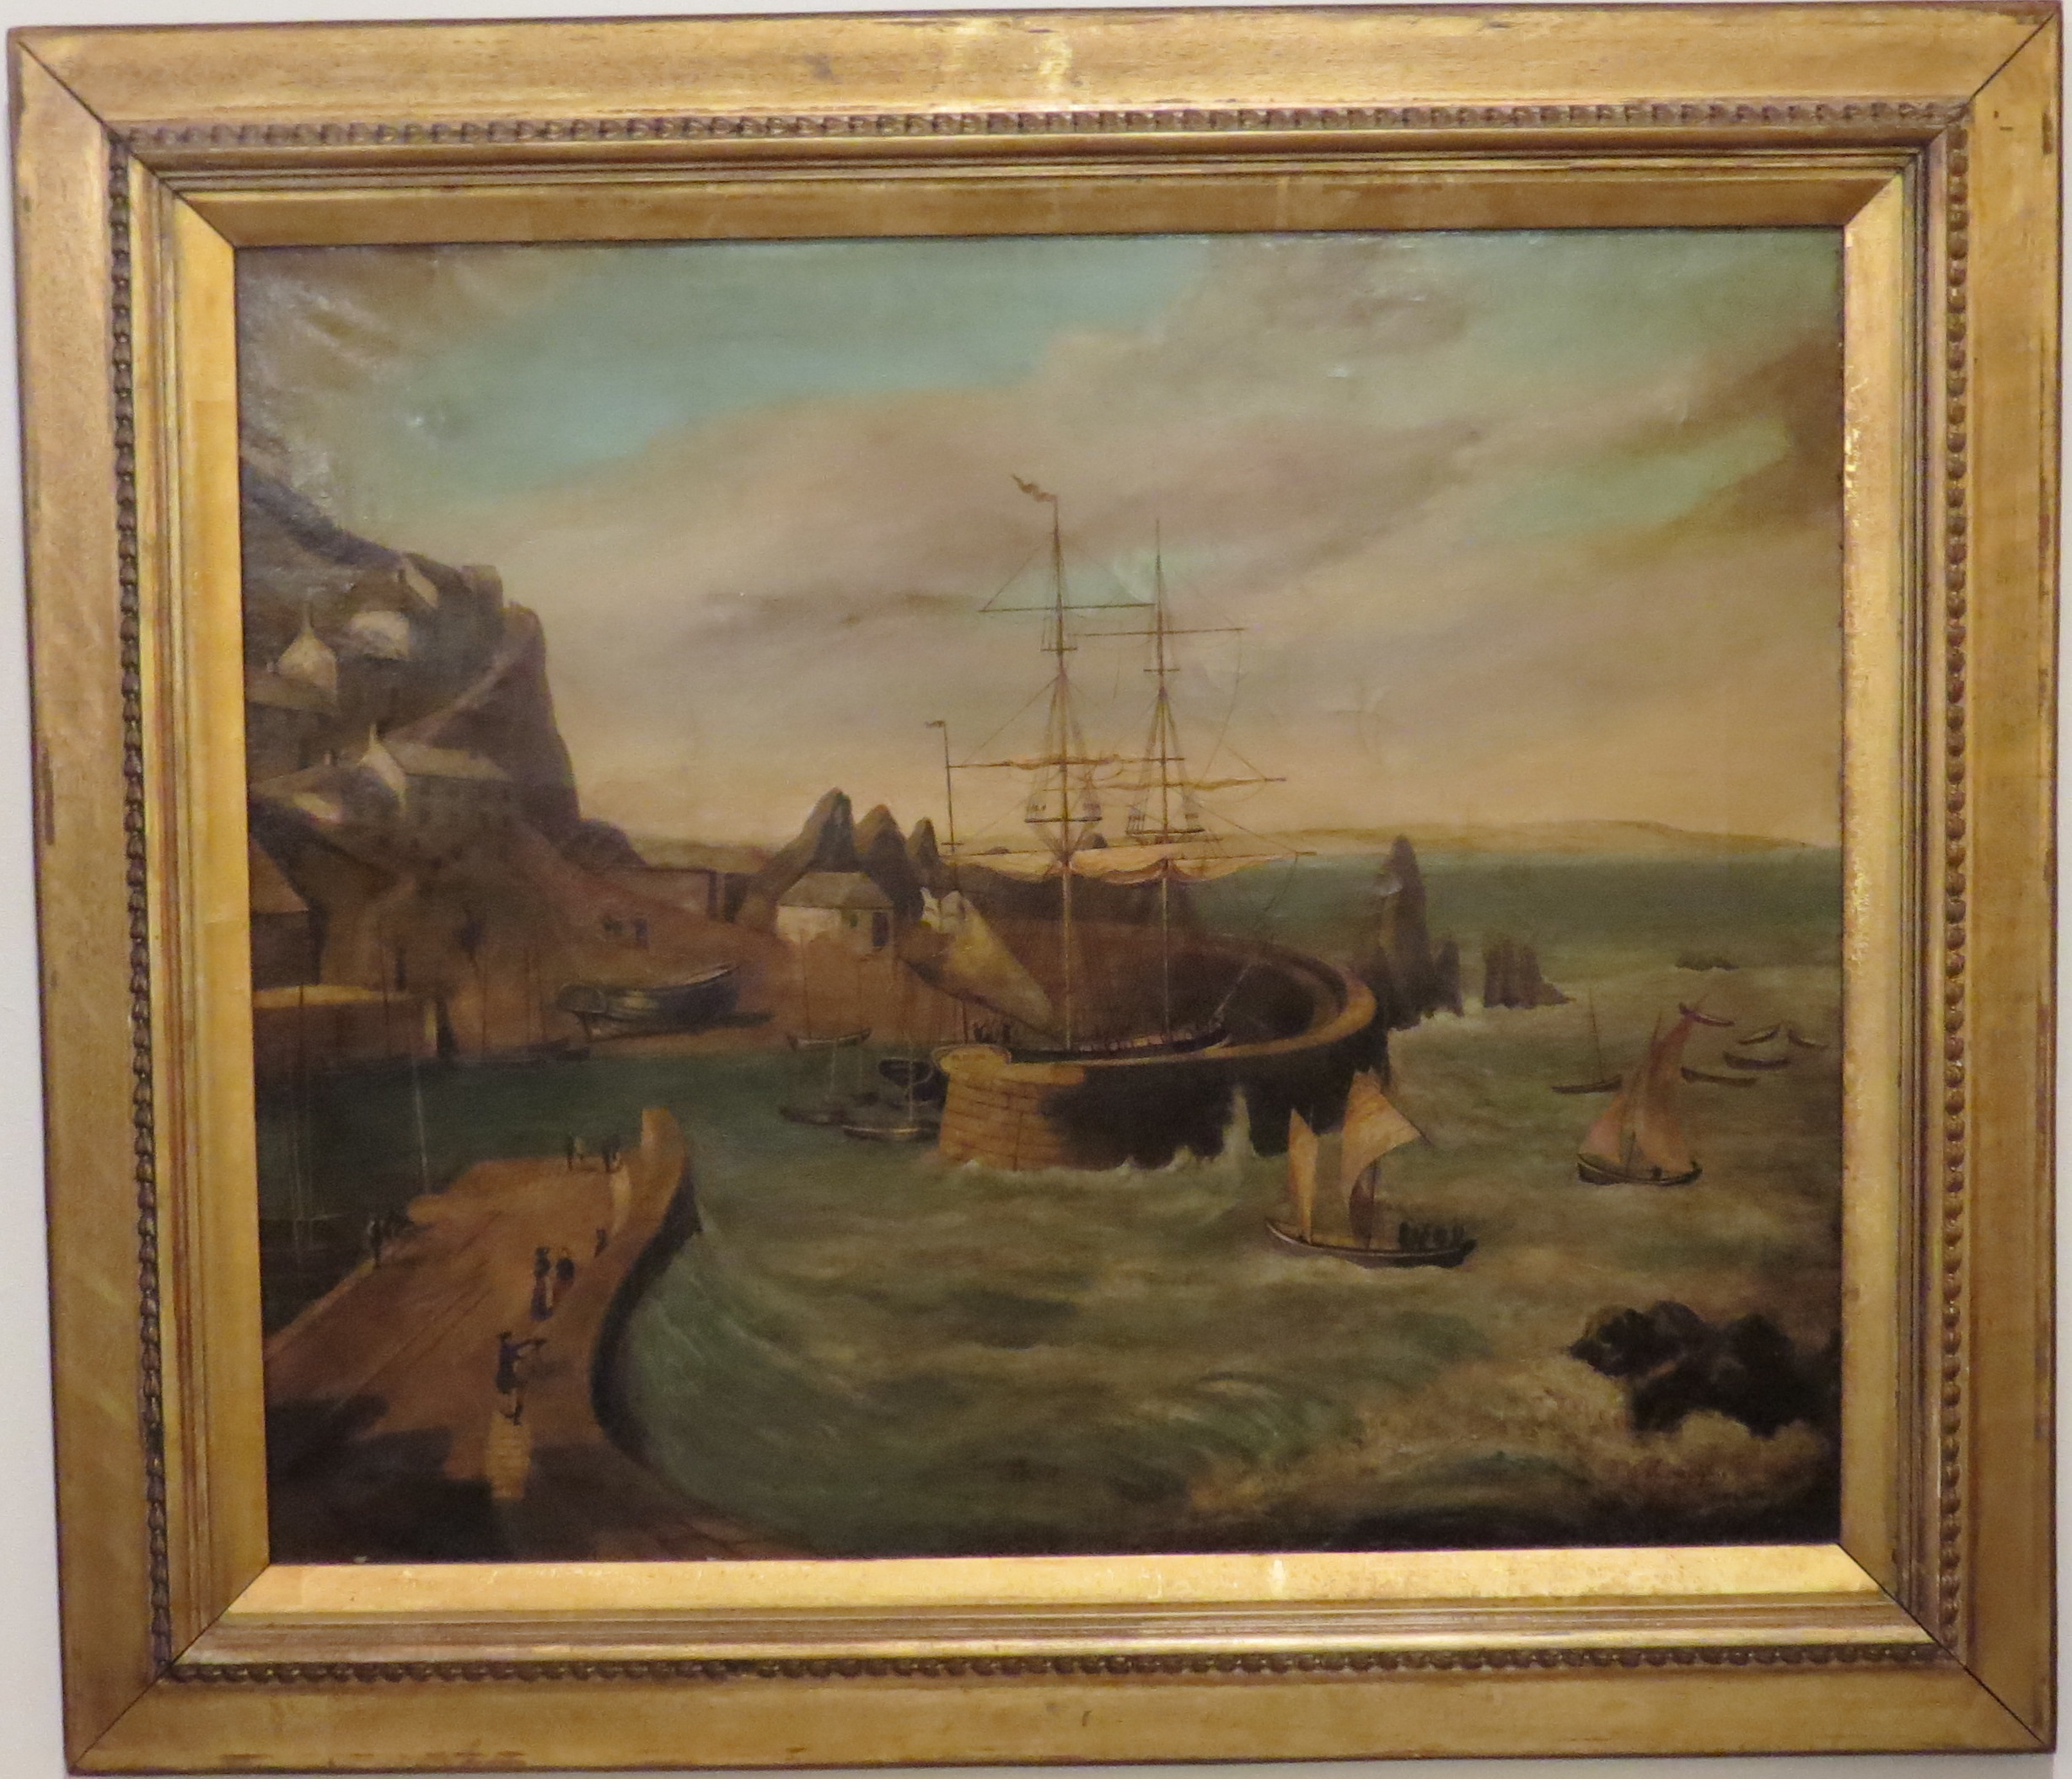 Oil on Canvas of a Harbor Scene in Mevagissey, Cornwall, England